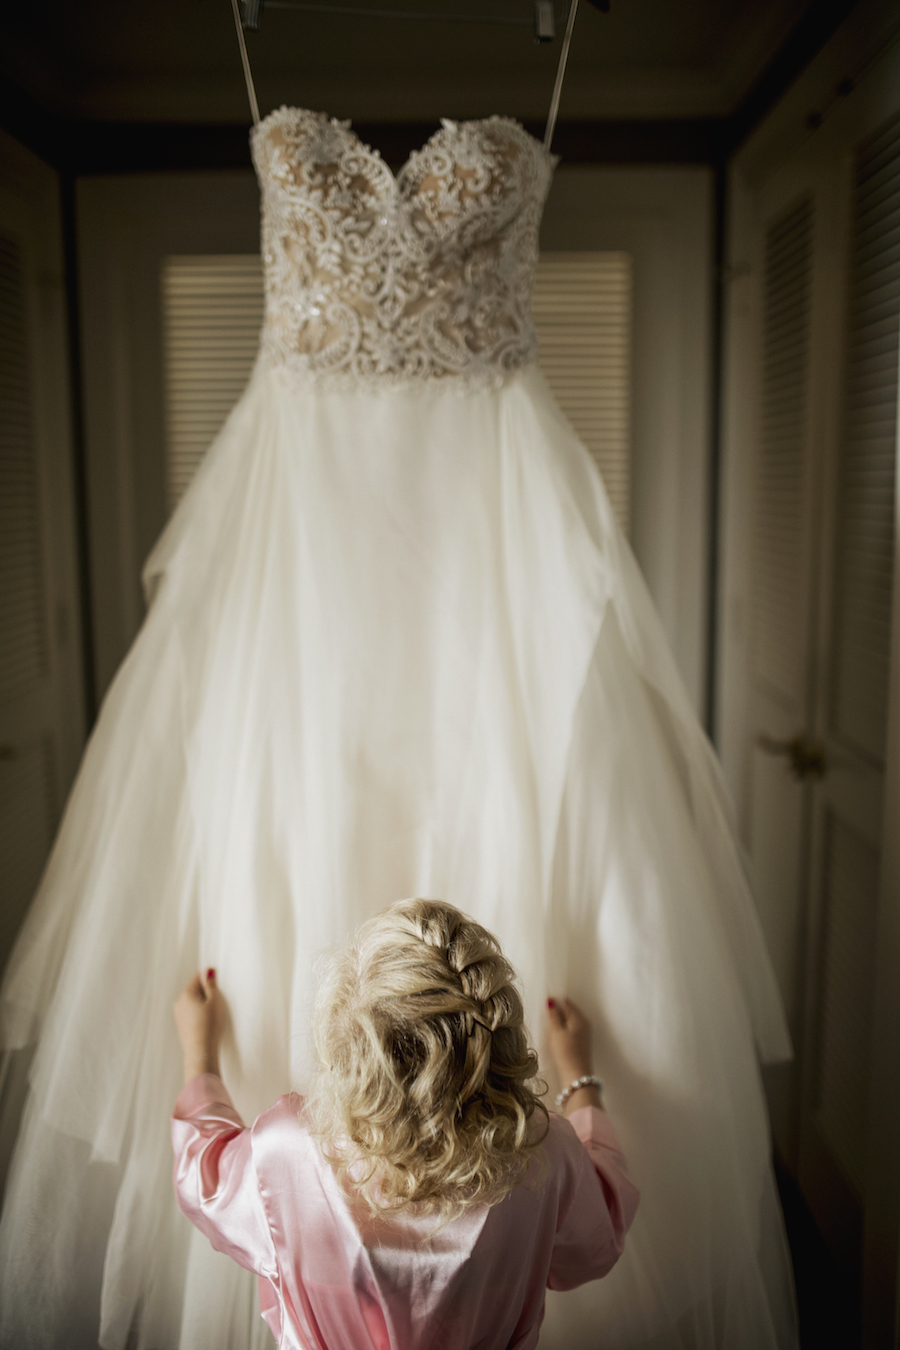 Flower Girl in Pink Robe Looking Up at Ivory Lace and Tulle Reem Acra Ballgown Wedding Portrait   Getting Ready Suite at Ritz Carlton Sarasota   Tampa Bay Wedding Planner NK Productions